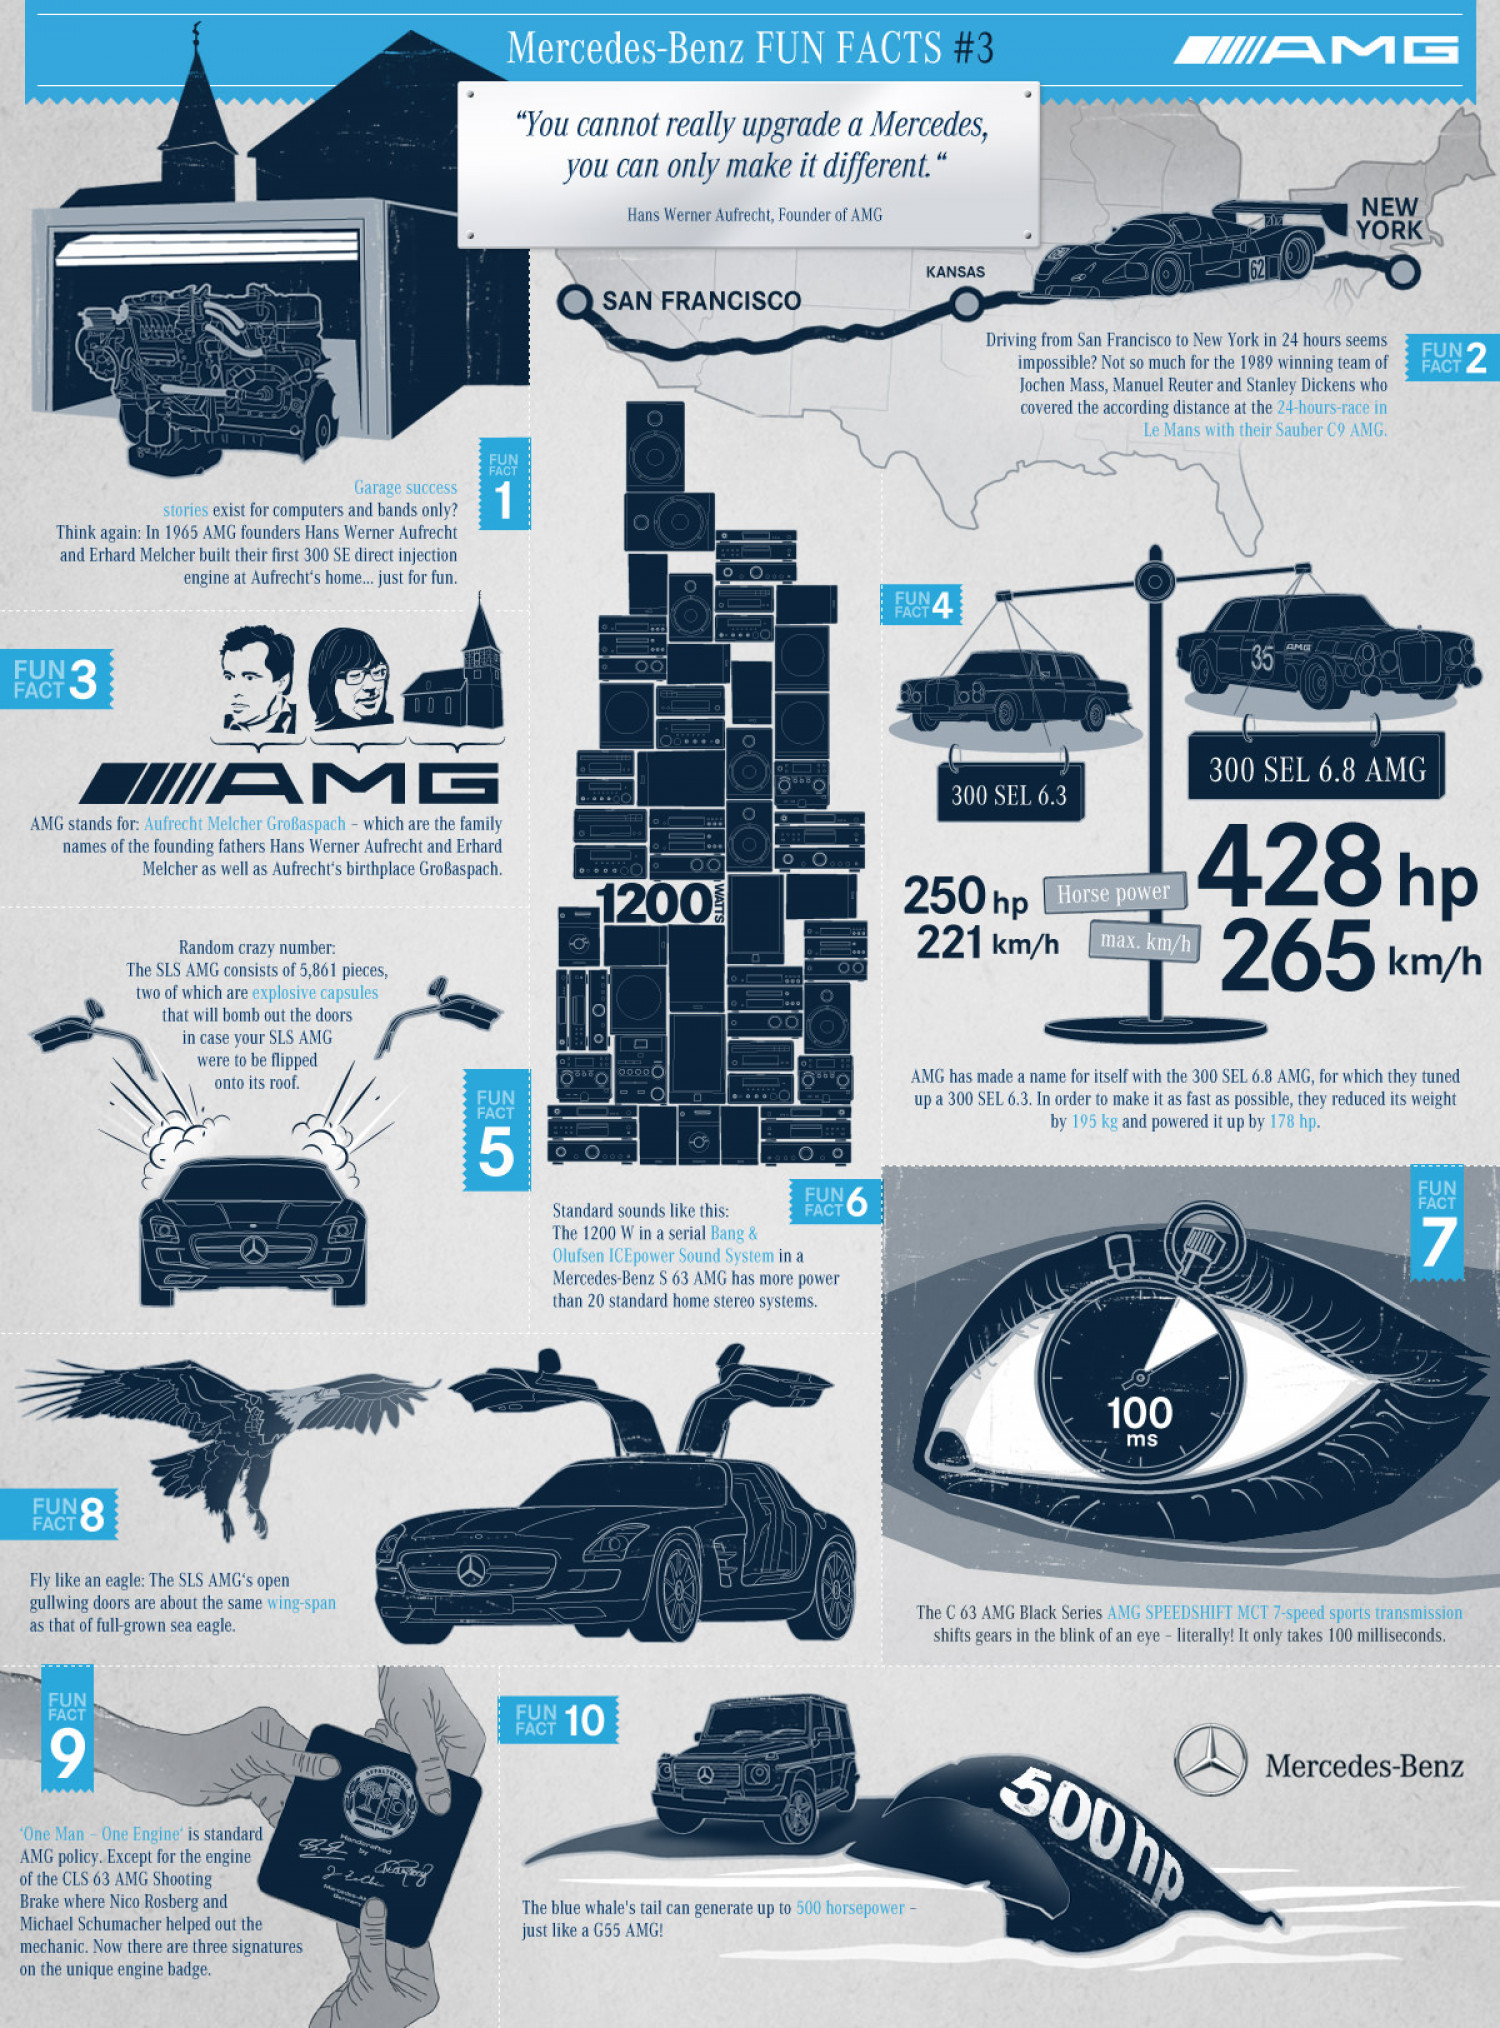 Mercedes Benz History Facts >> Mercedes Benz Fun Facts 3 Amg Visual Ly